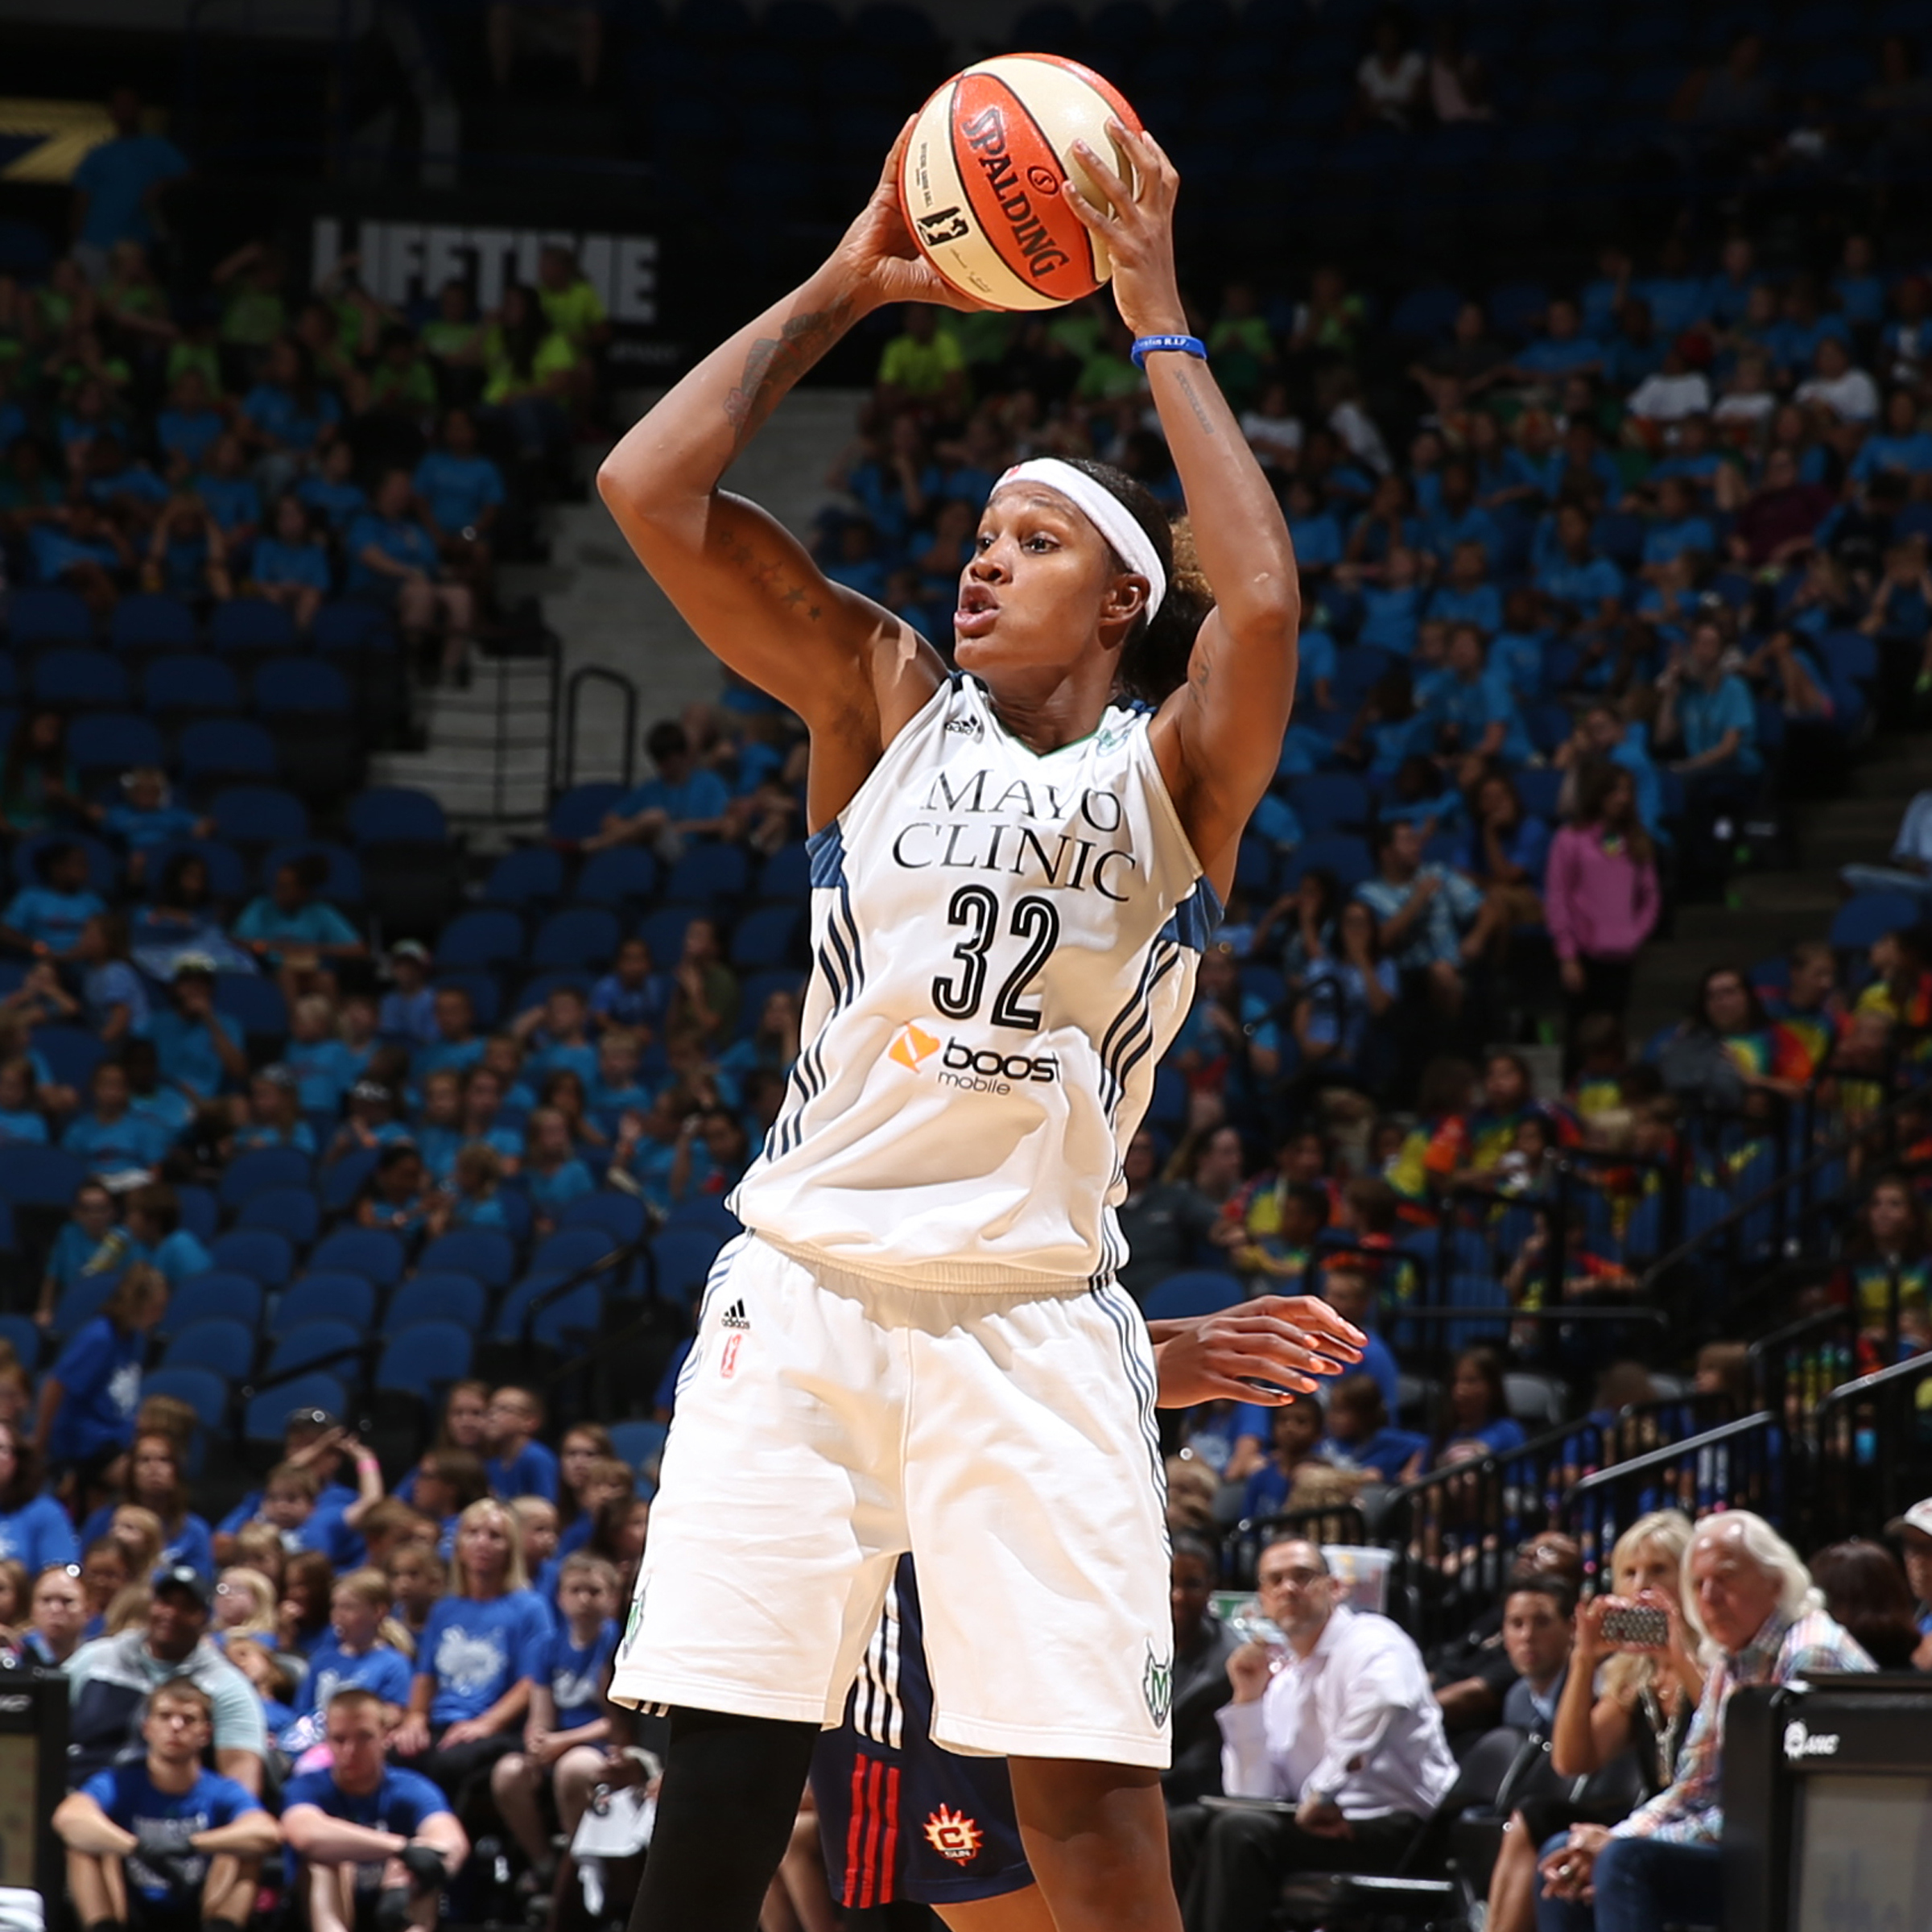 MINNEAPOLIS, MN - JULY 22: Rebekkah Brunson #32 of the Minnesota Lynx shoots against the Connecticut Sun on July 22, 2015 at Target Center in Minneapolis, Minnesota. NOTE TO USER: User expressly acknowledges and agrees that, by downloading and or using this Photograph, user is consenting to the terms and conditions of the Getty Images License Agreement. Mandatory Copyright Notice: Copyright 2015 NBAE (Photo by David Sherman/NBAE via Getty Images)